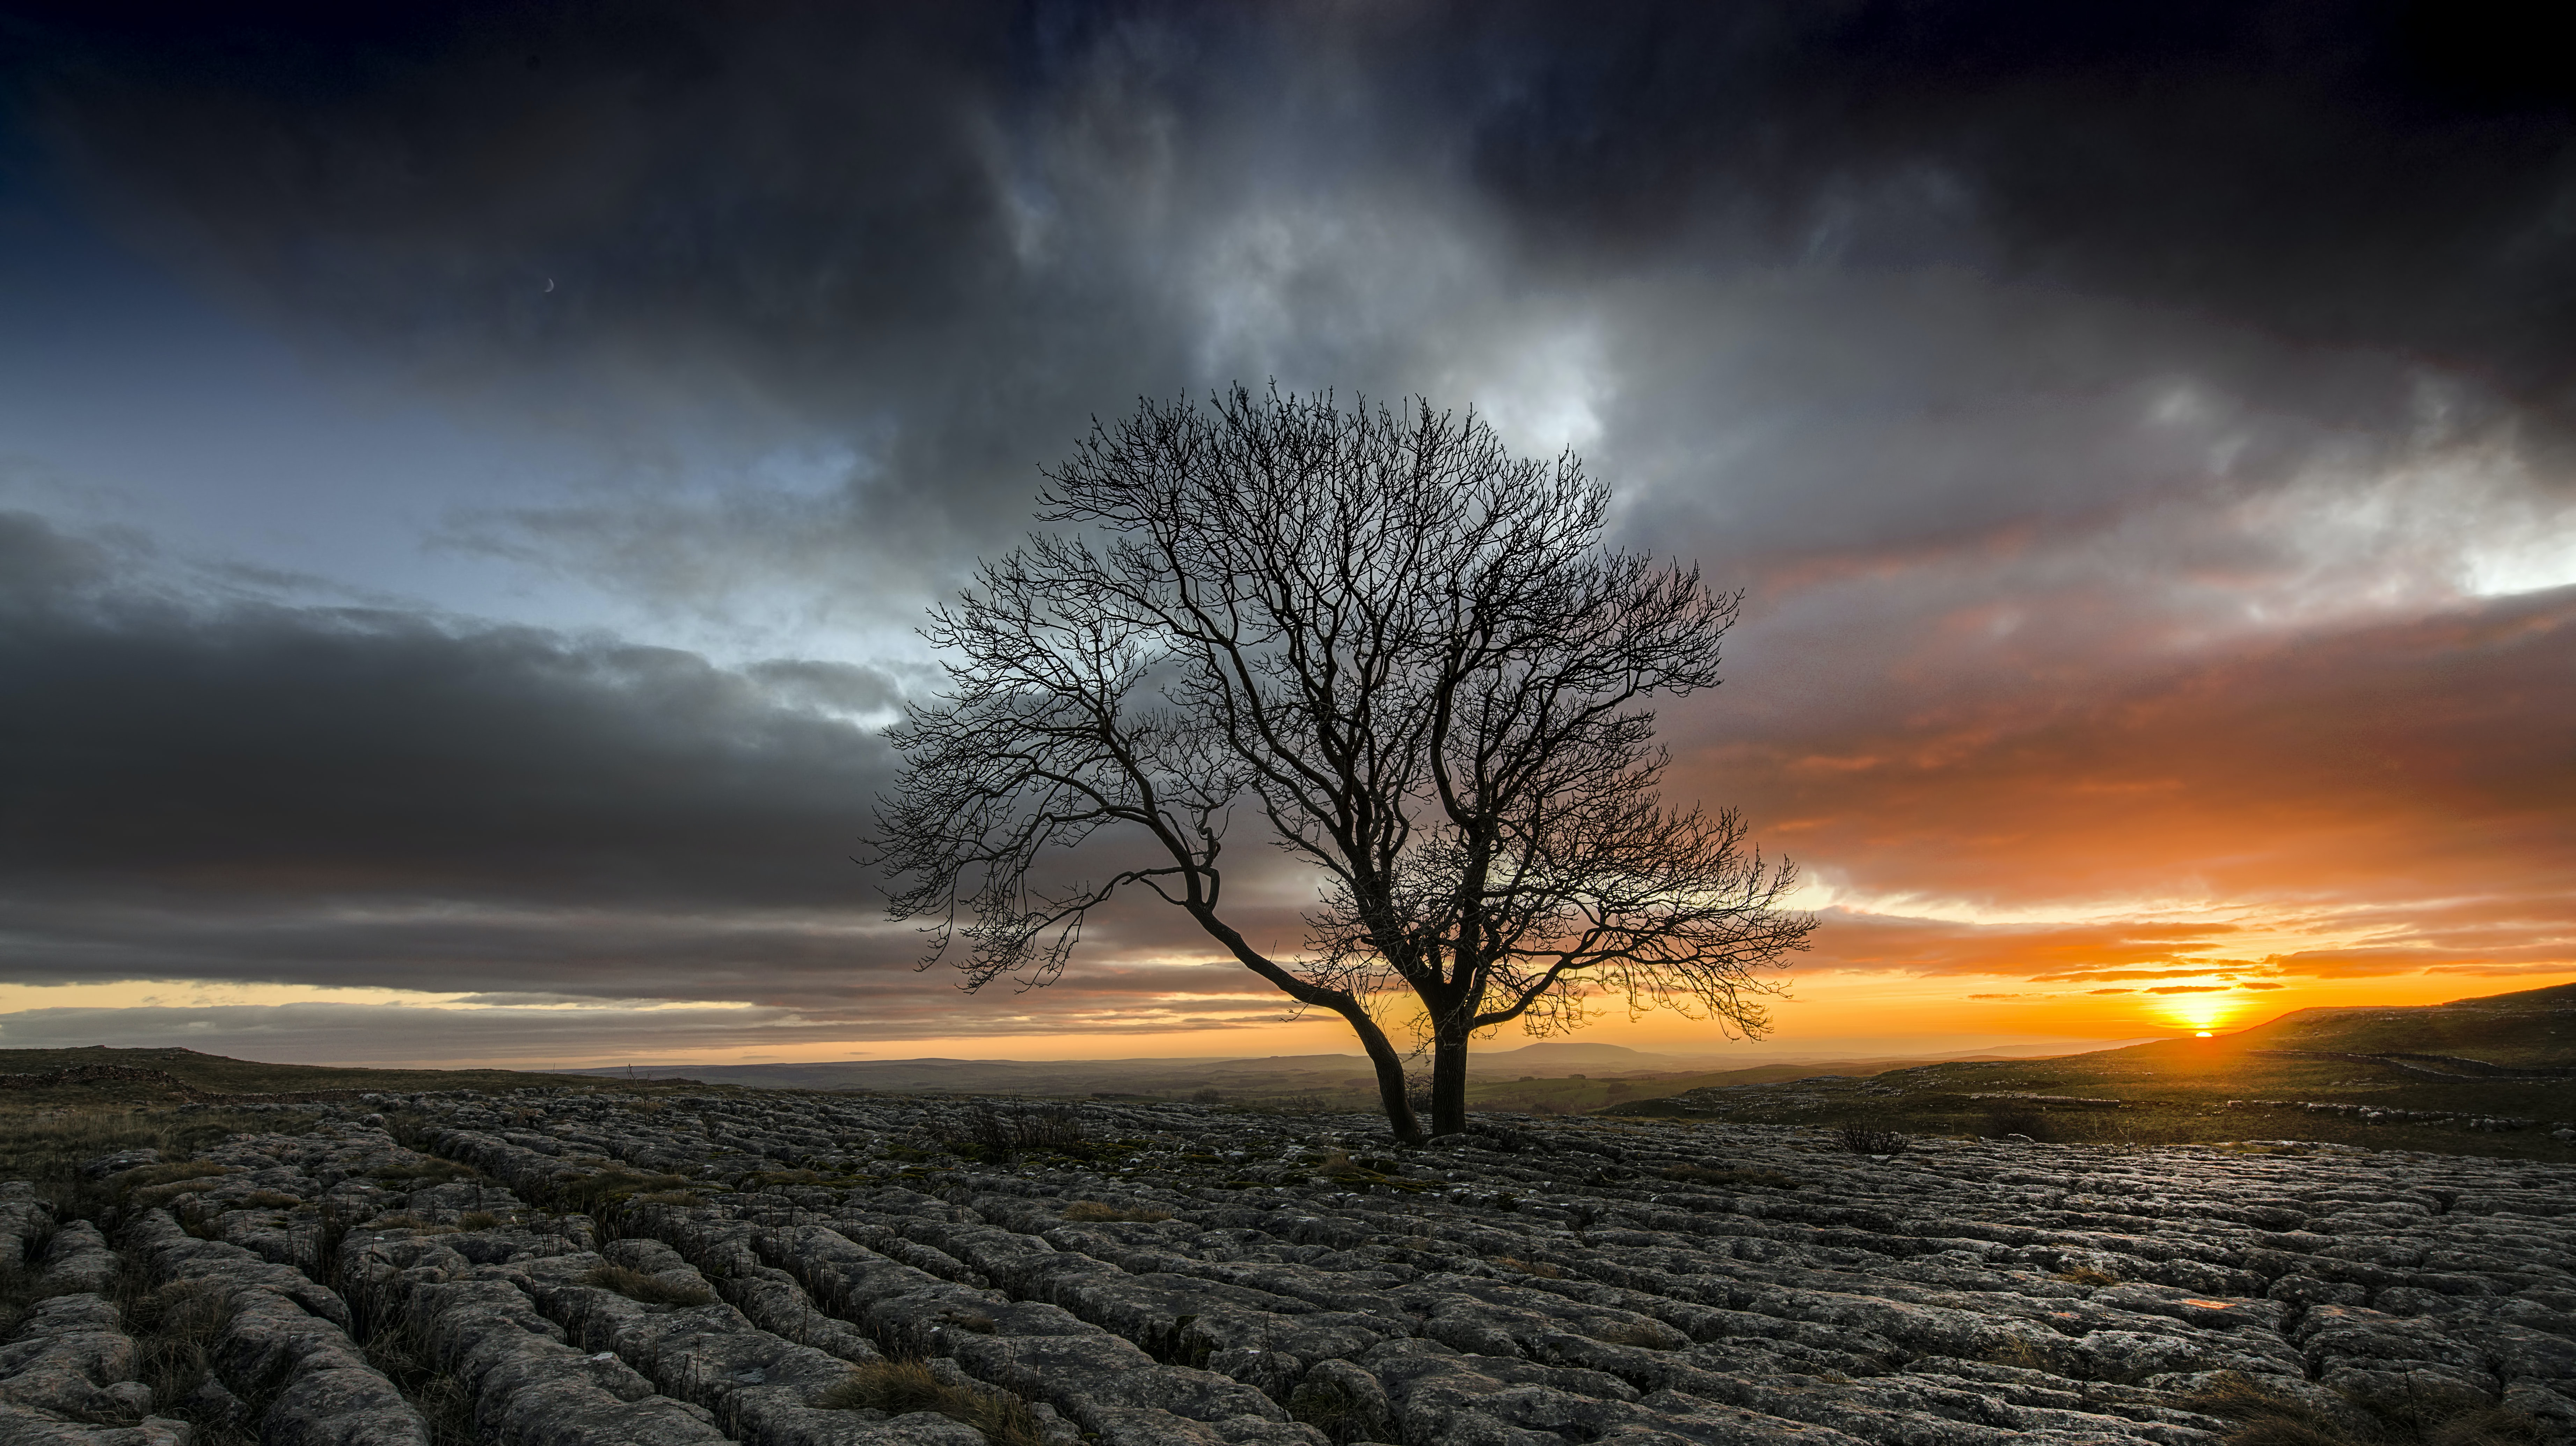 A solitary, bare tree in a desolate field, with the clouds and sunset in the distance